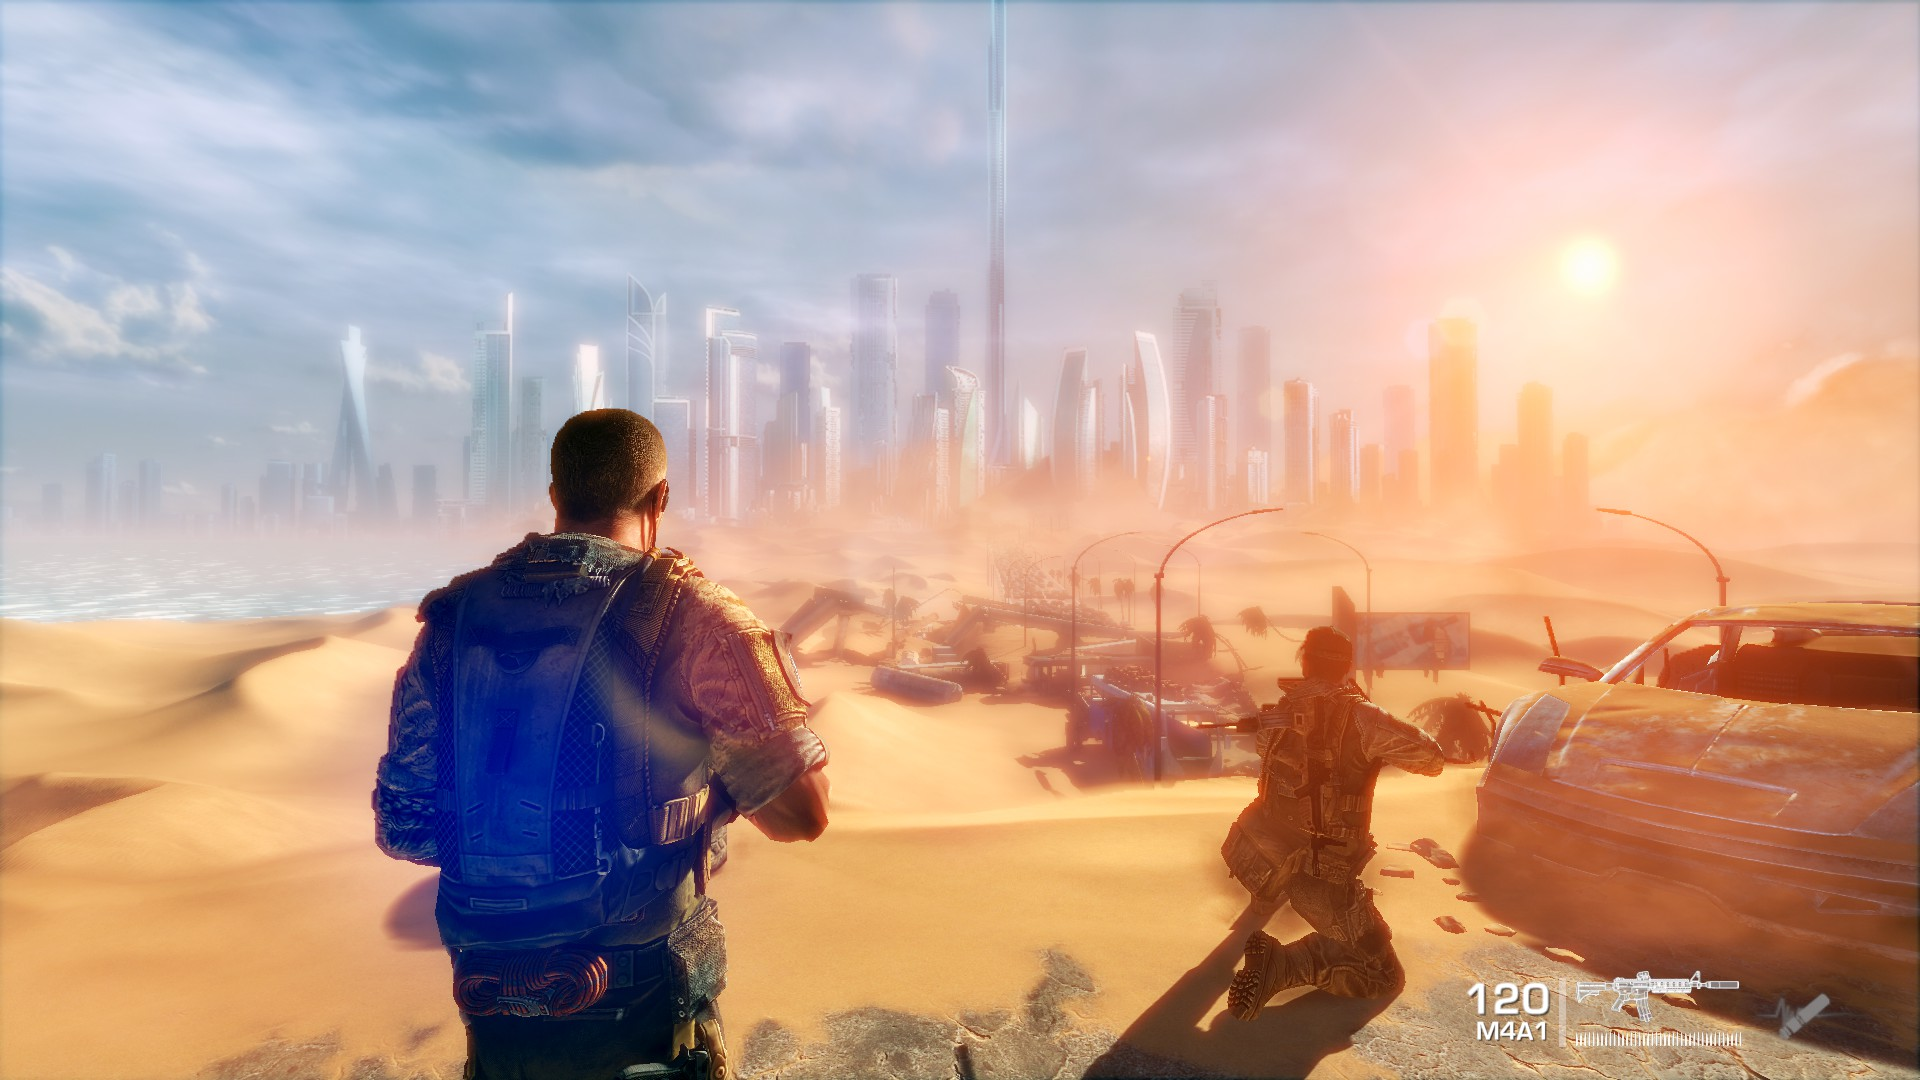 Download do jogo spec ops the line pc completo